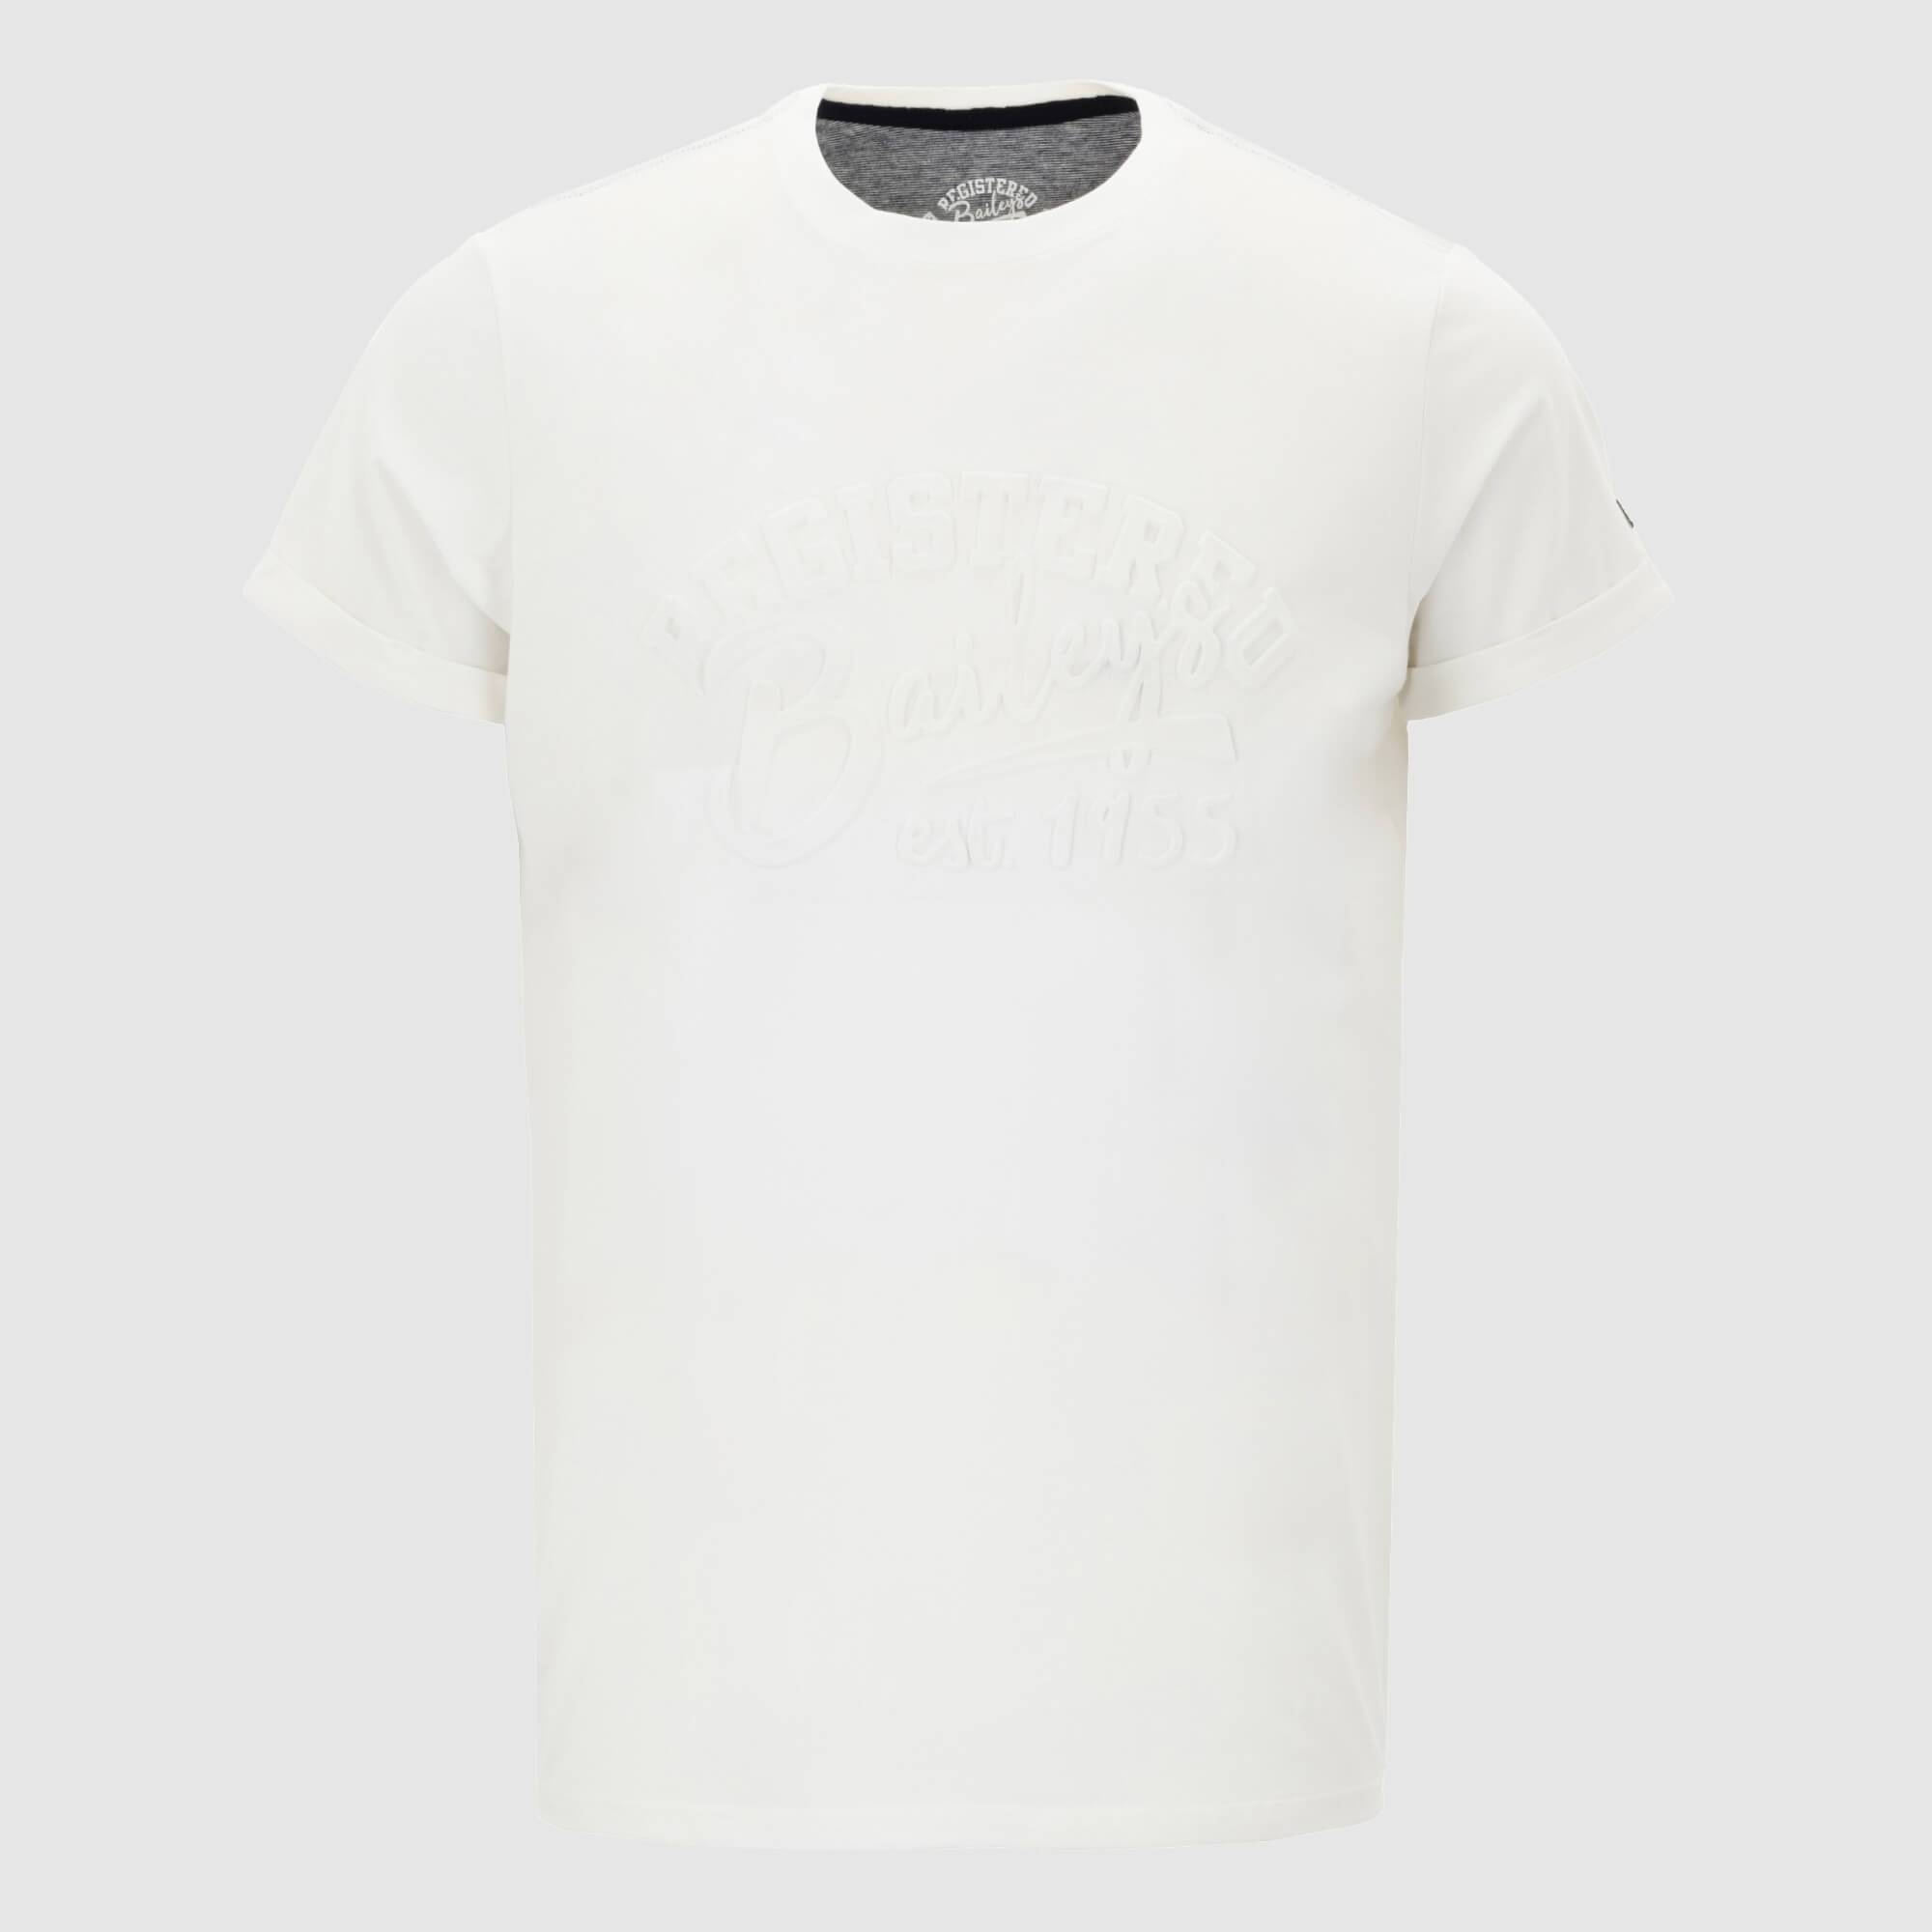 Camiseta texto relieve manga corta 105002